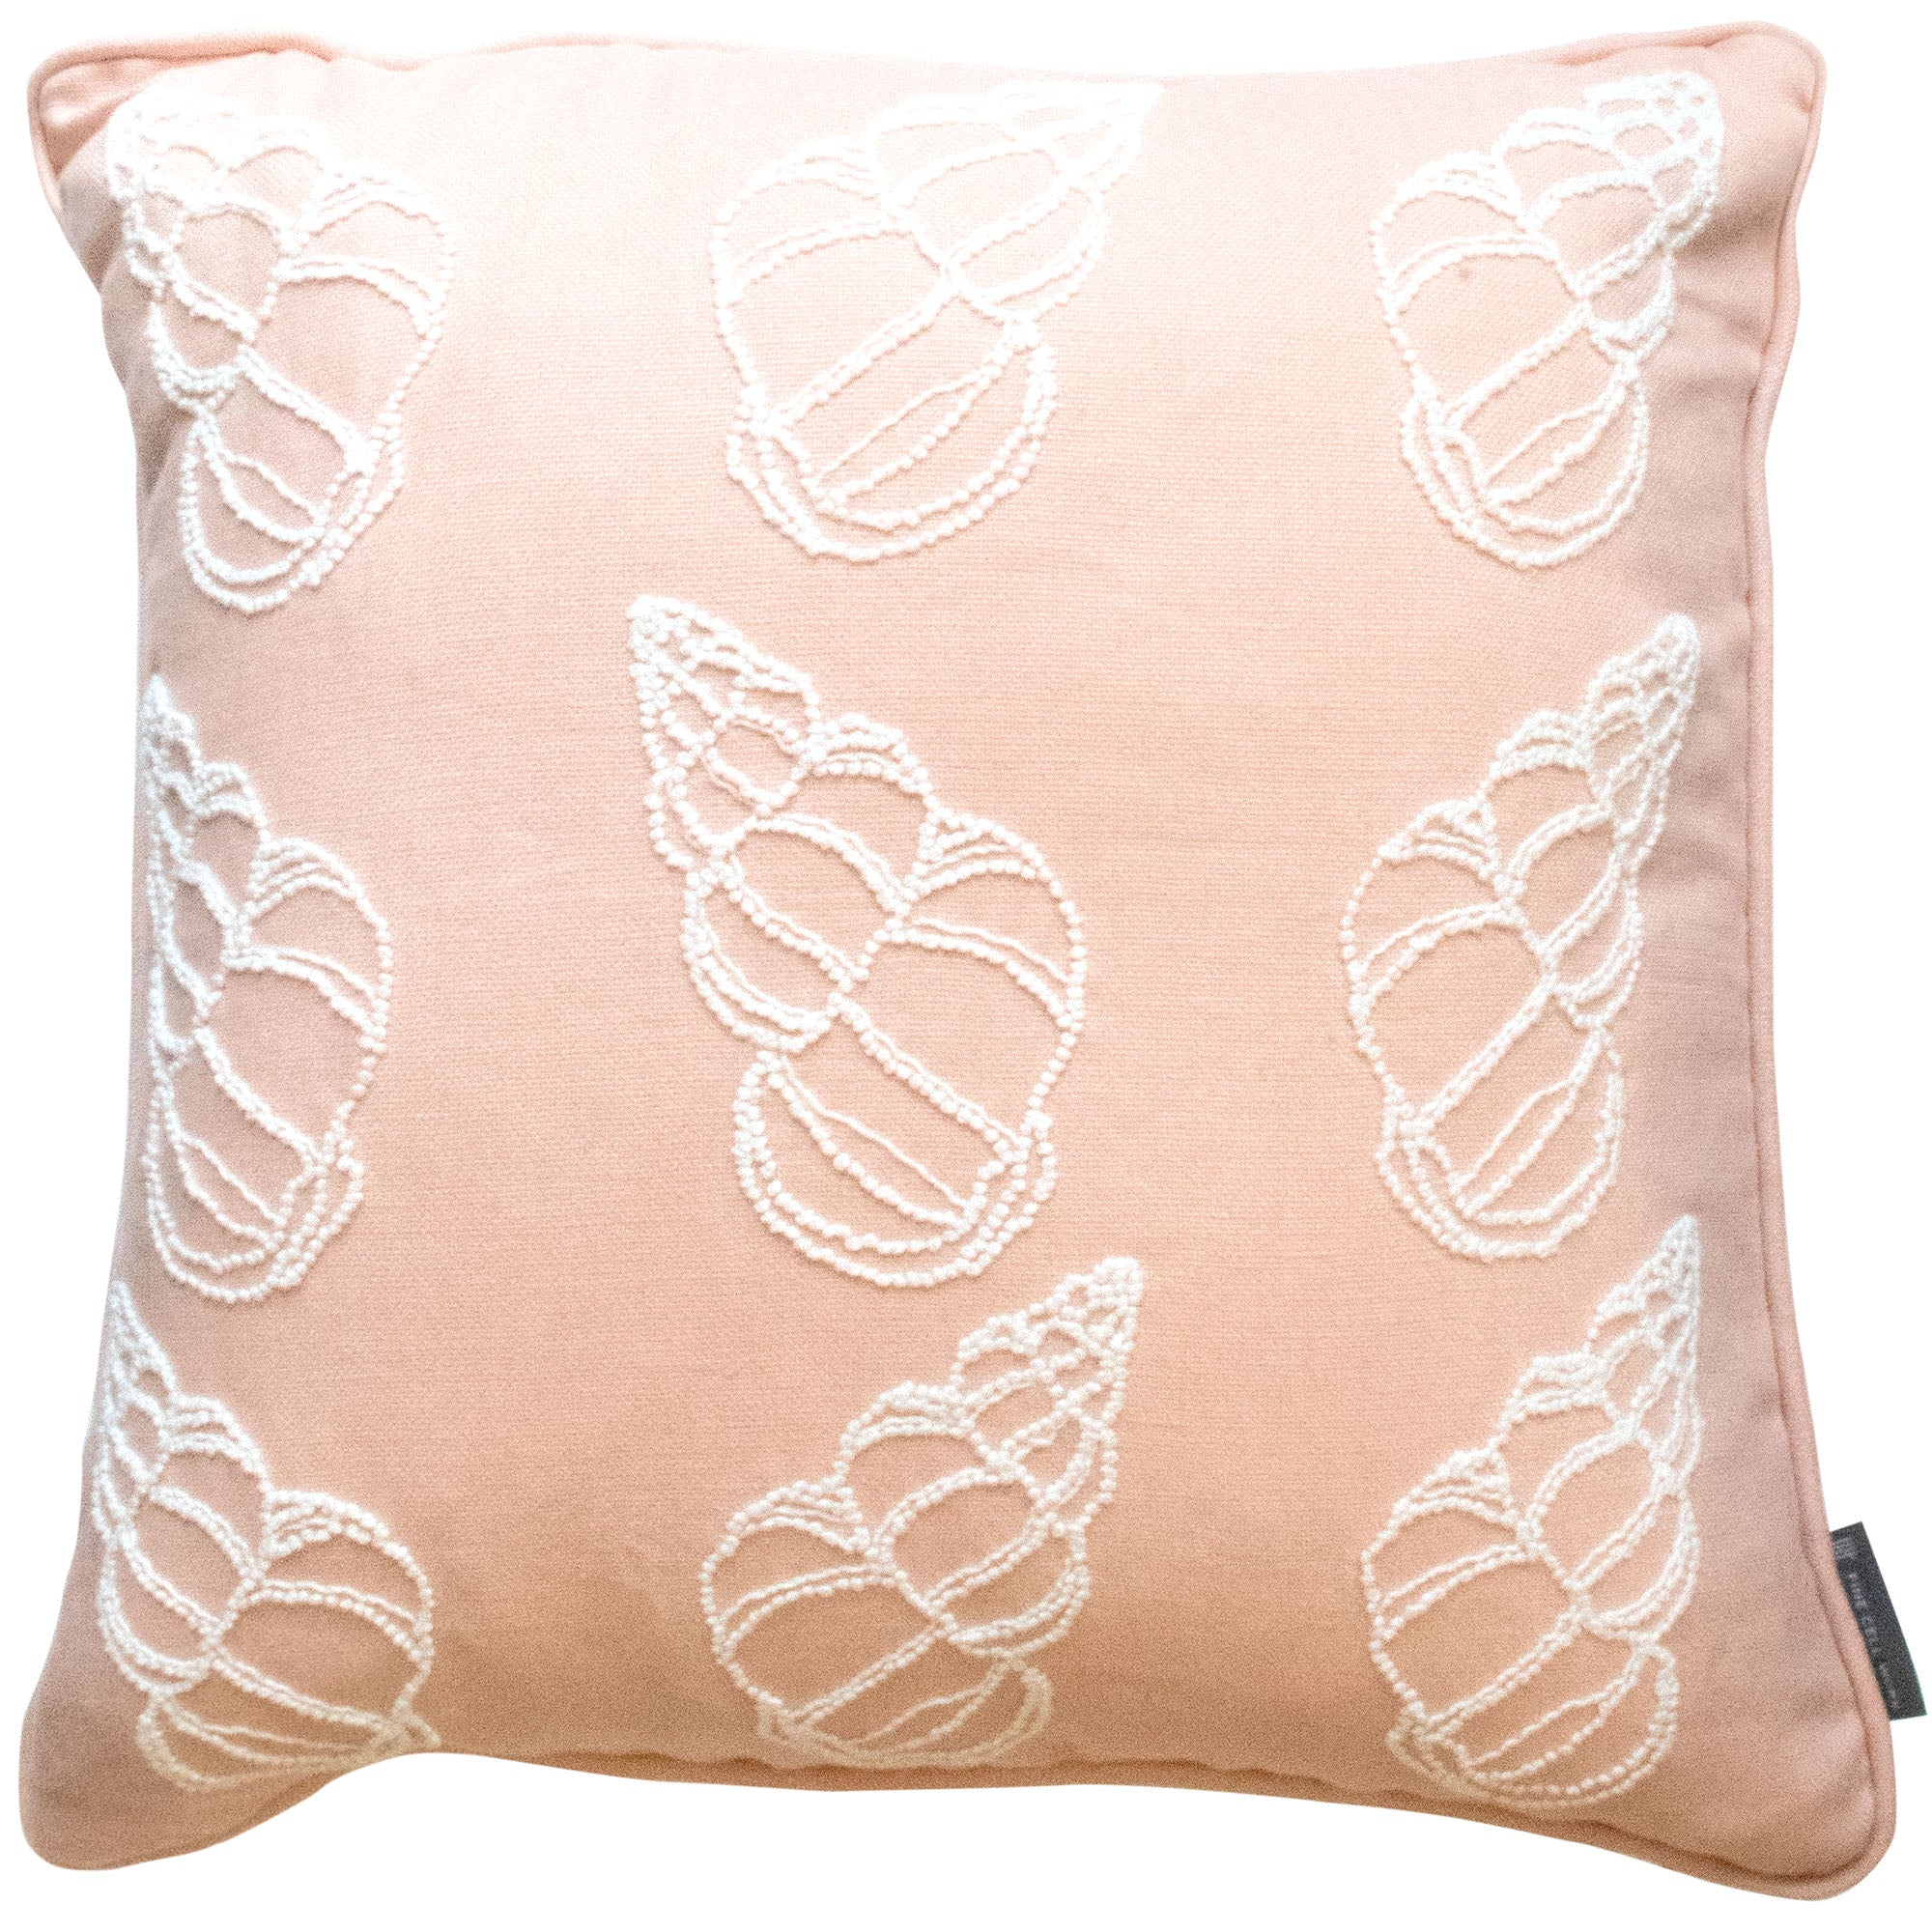 Fine Cell Work Melissa Wyndham Shell Cones Hand Embroided Cushion Pink